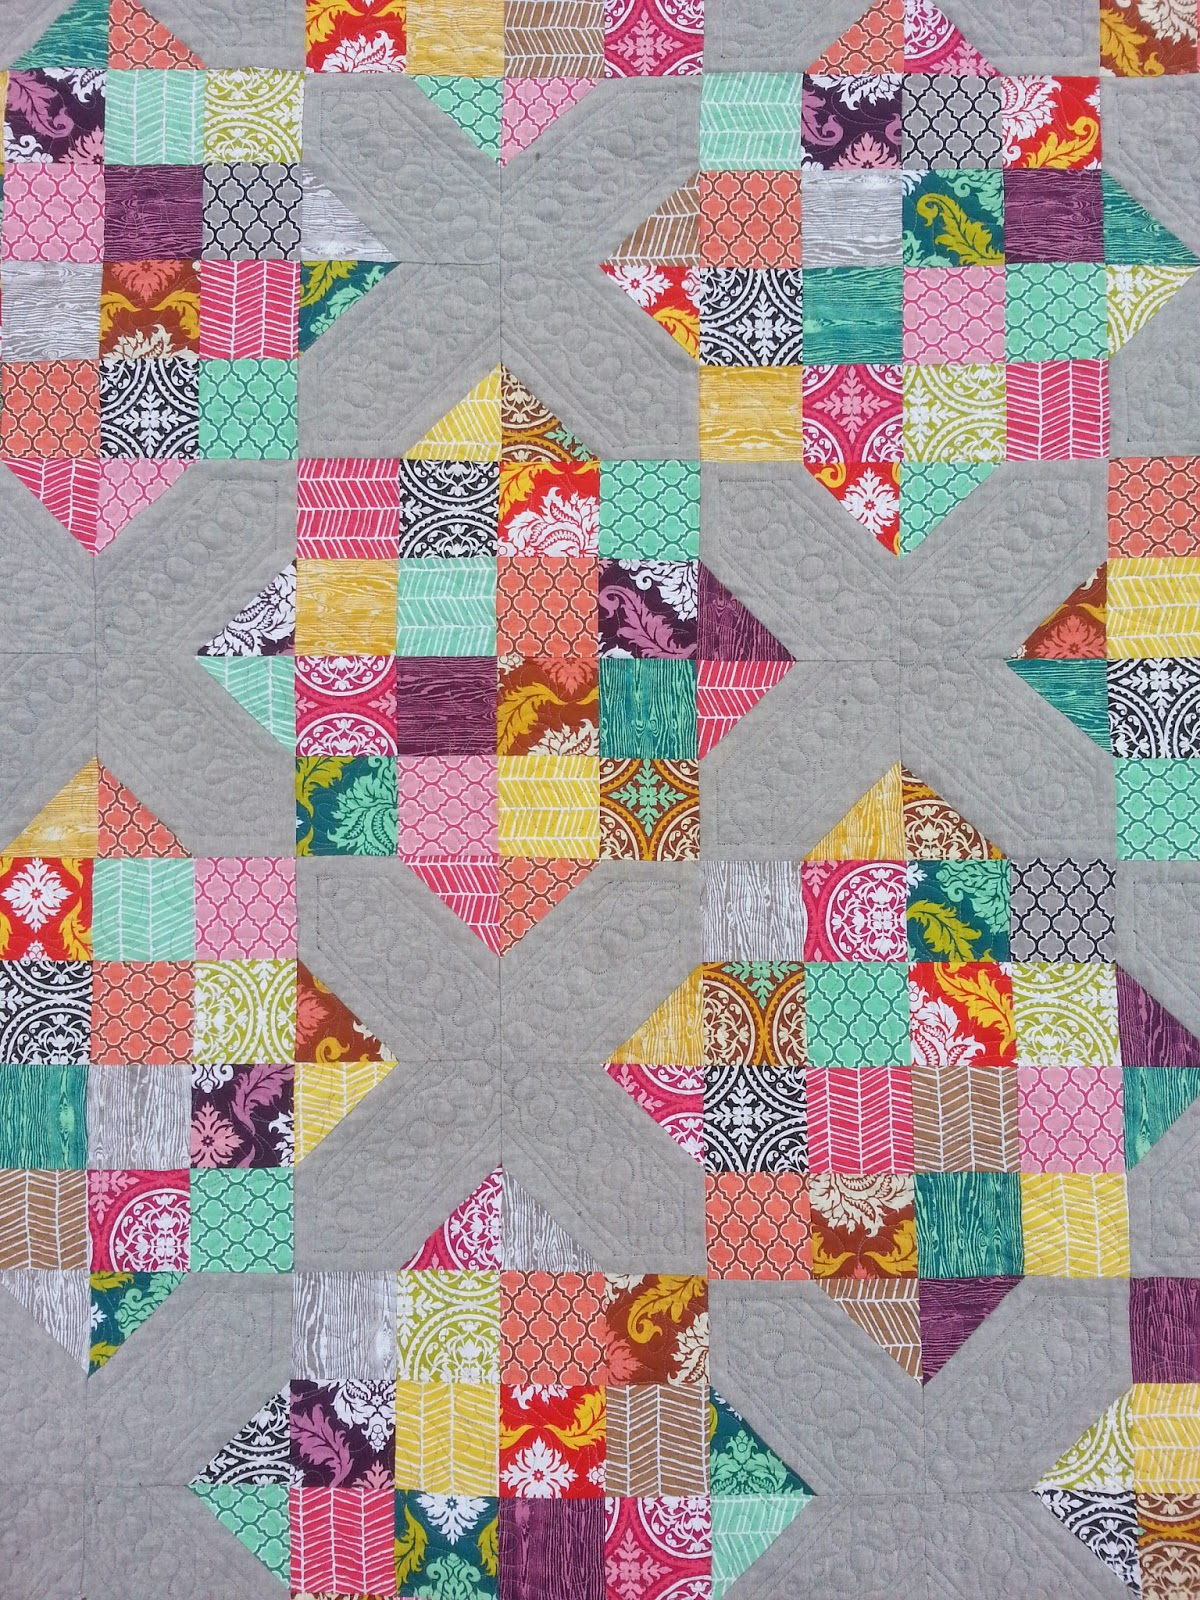 Quilting Texture on Arkansas Crossroads Quilt